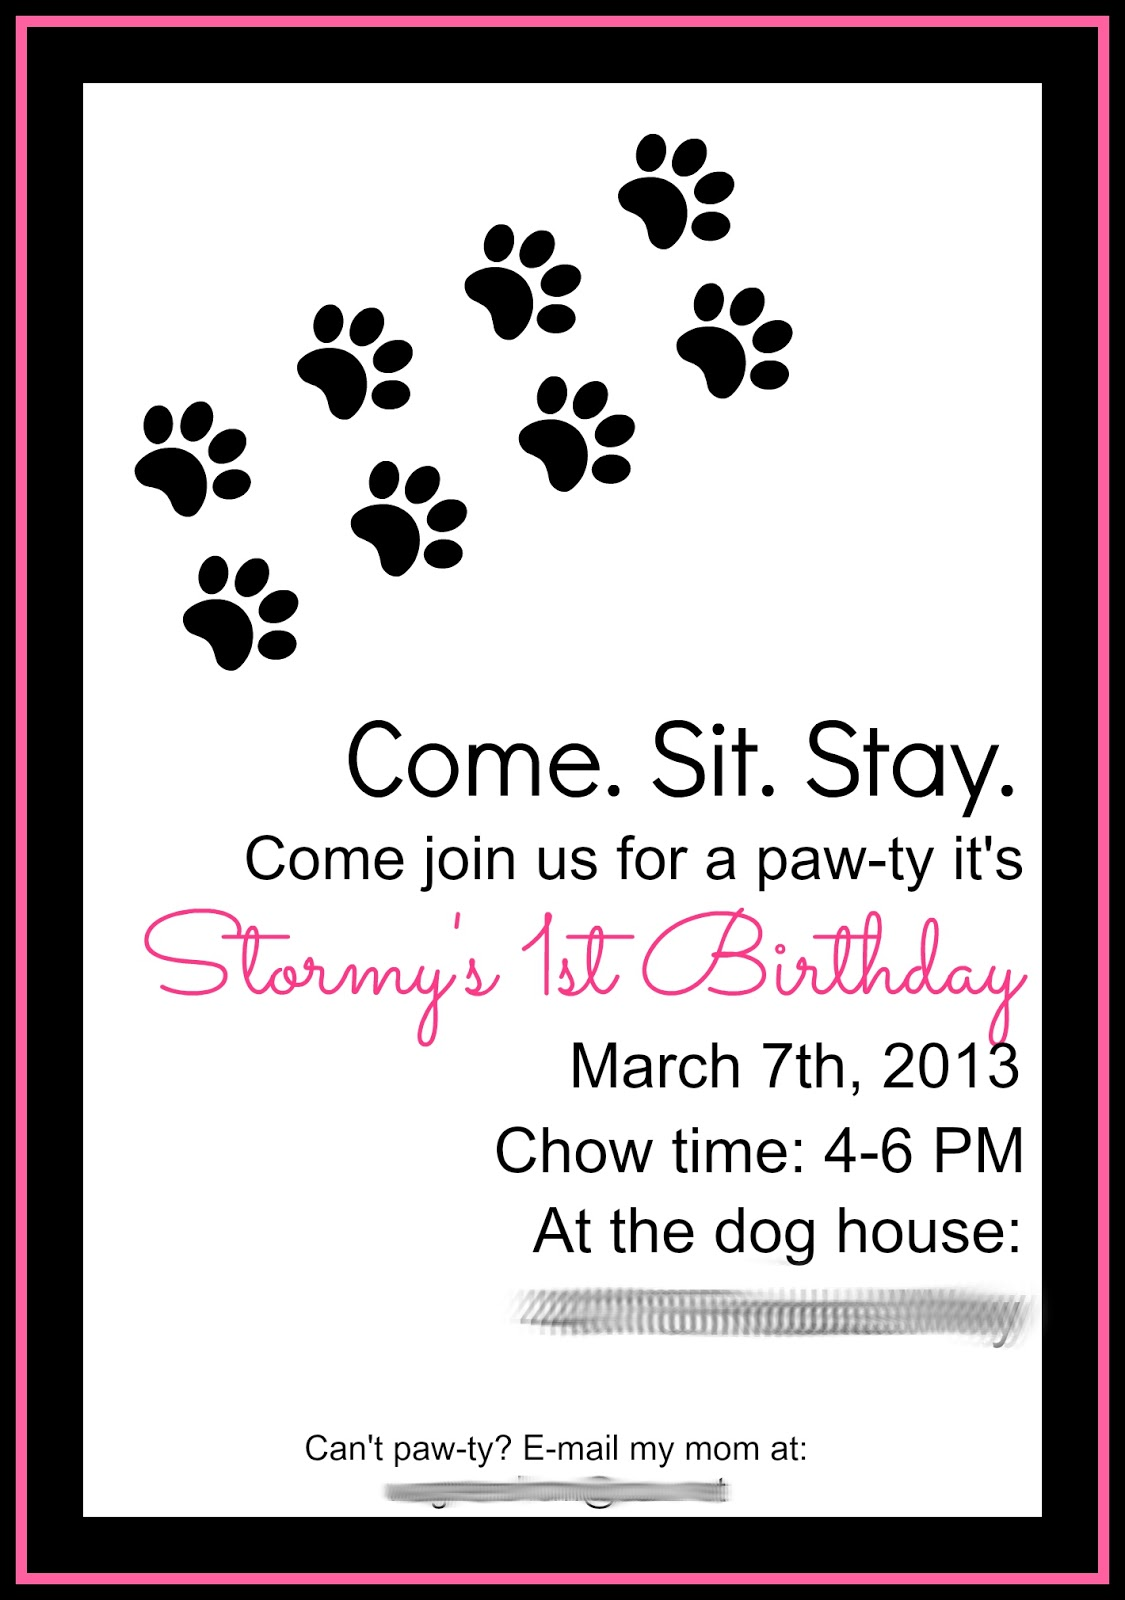 Dog Party Invitations was very inspiring ideas you may choose for invitation ideas